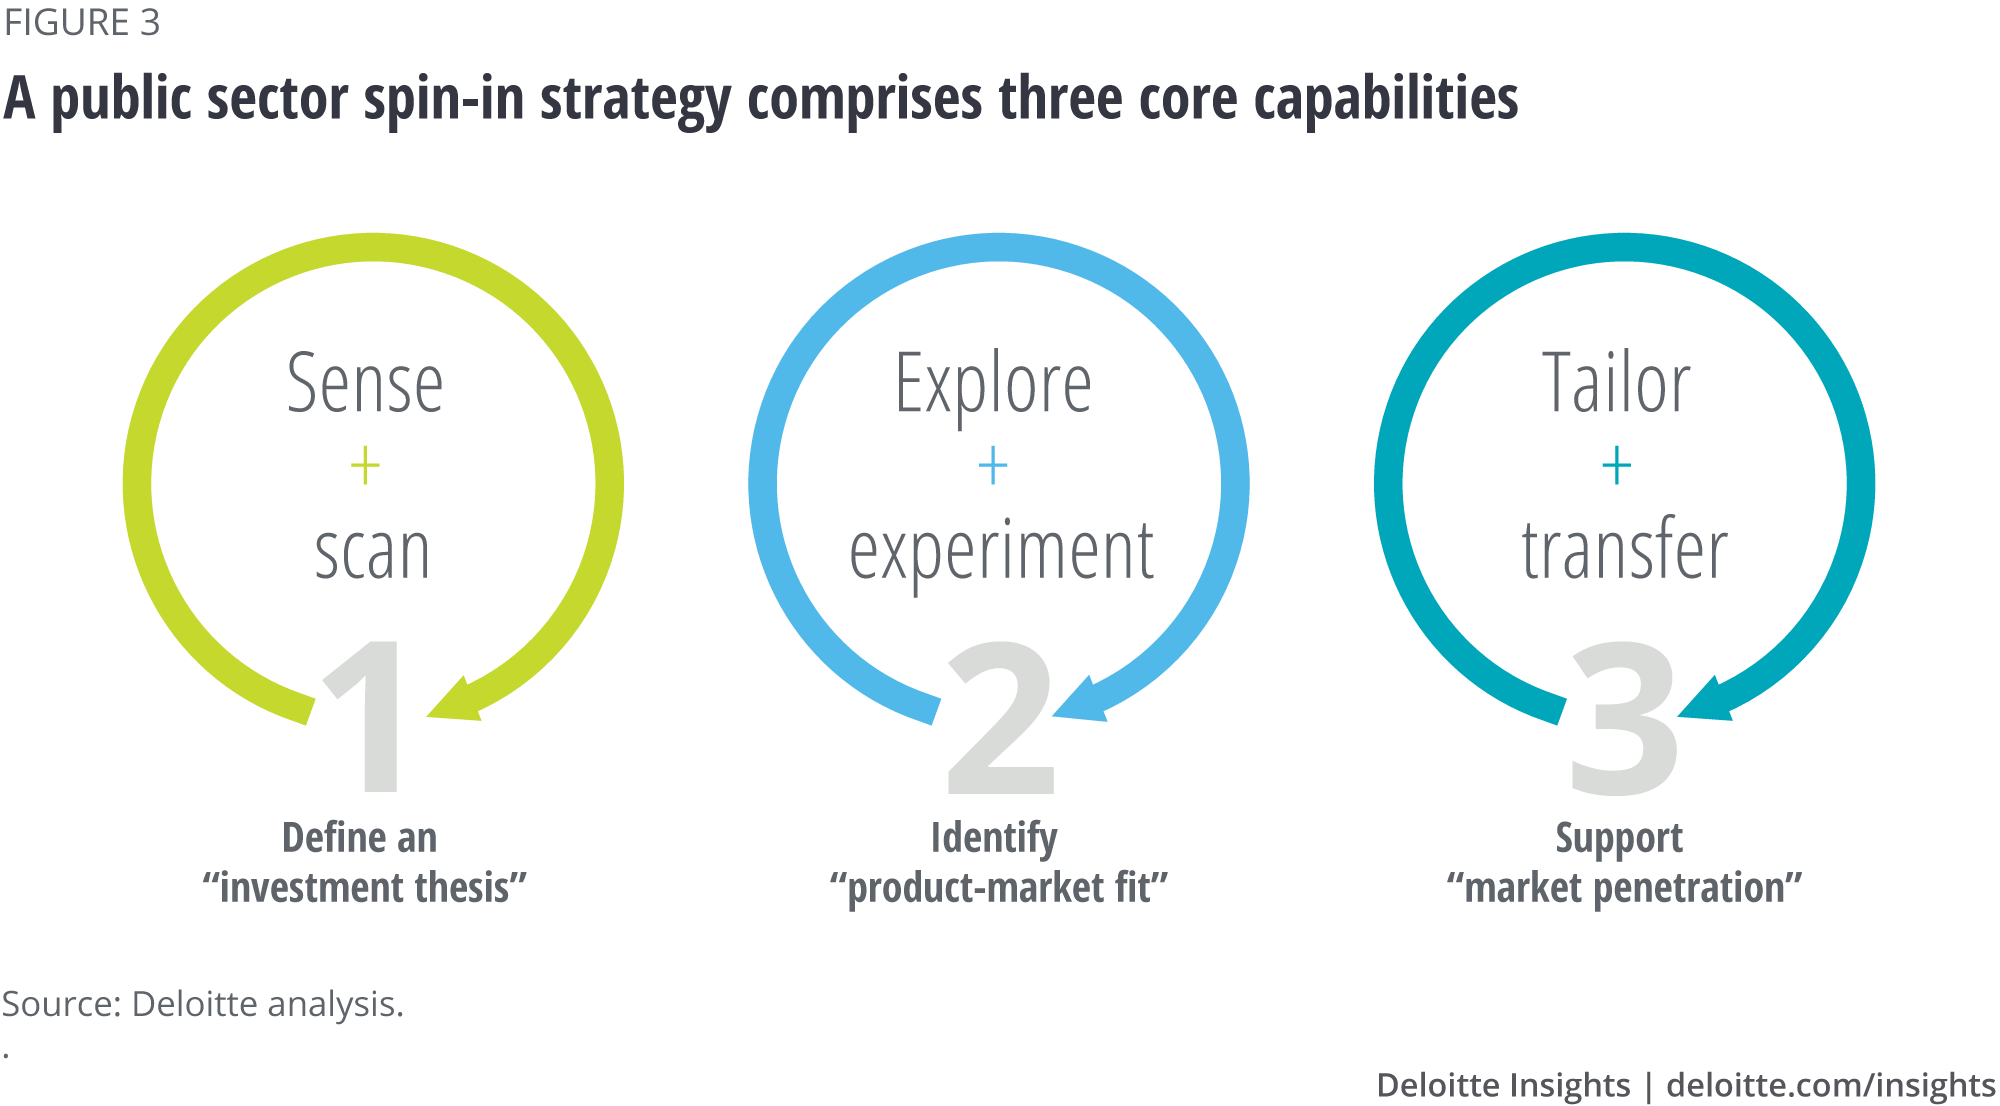 A public sector spin-in strategy comprises three core capabilities